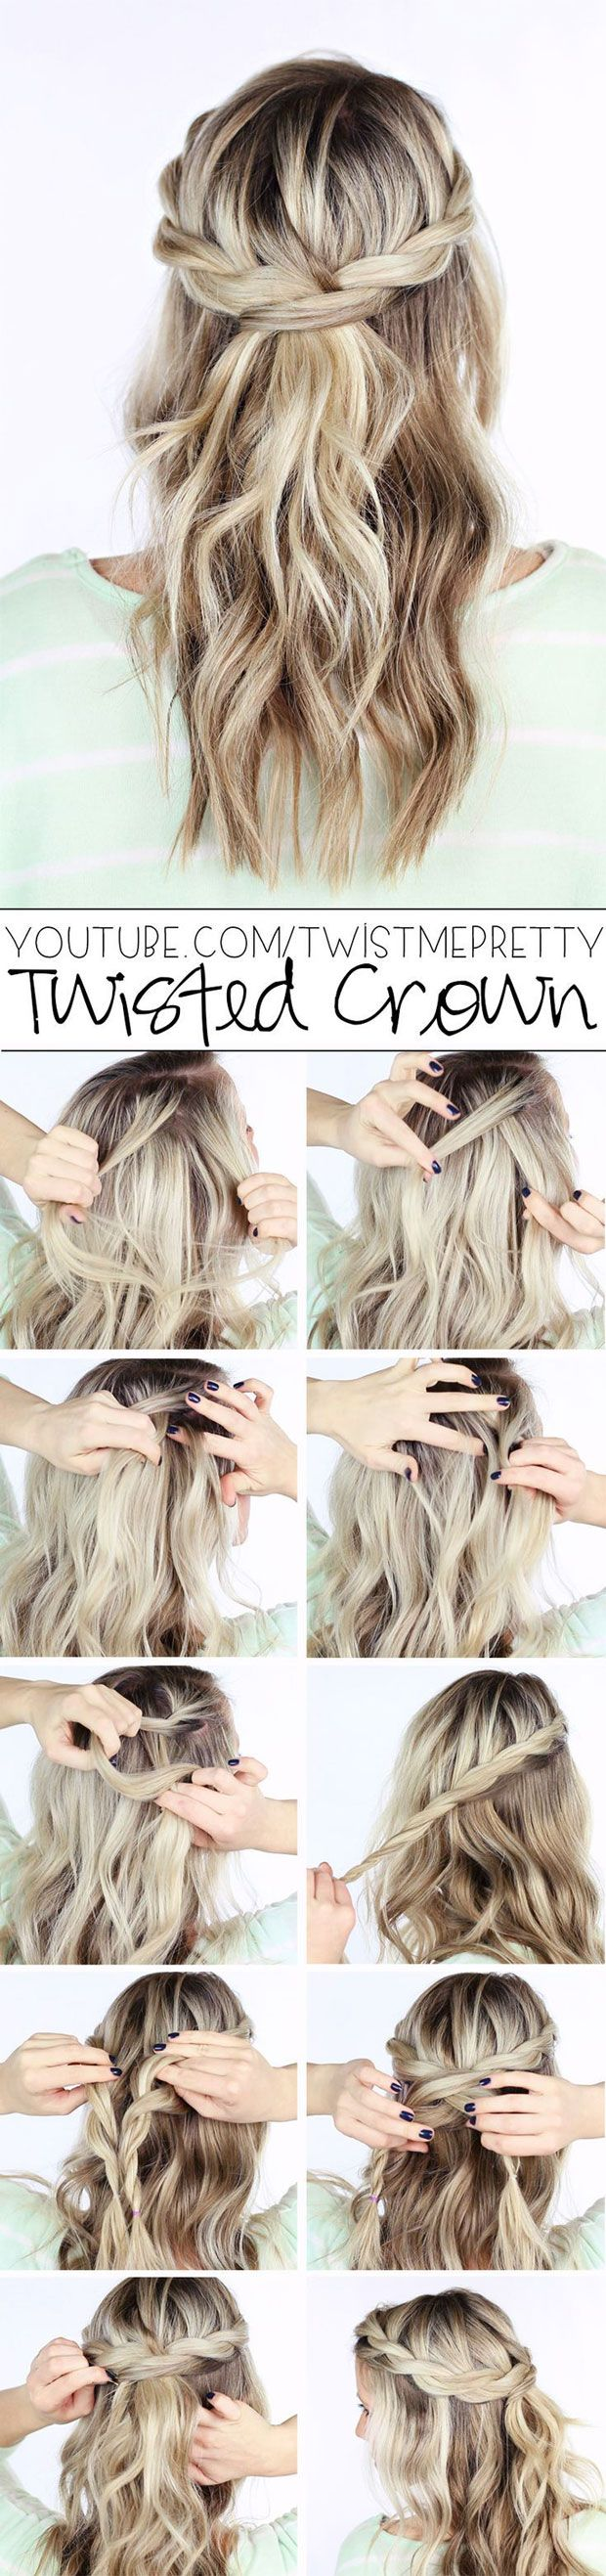 Boho braid crown:#braids #hair #hairstyles #beautyinthebag